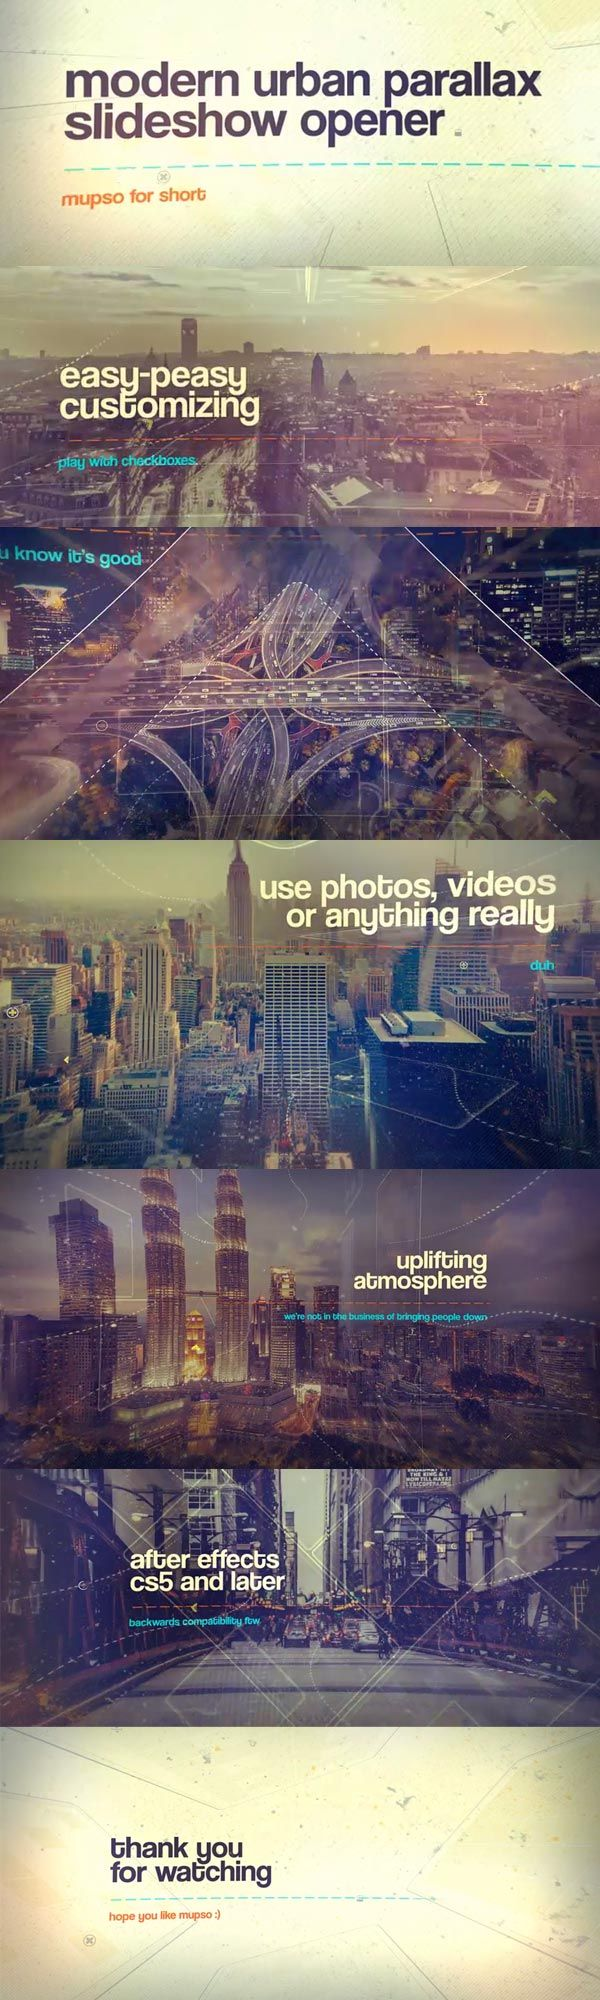 """Modern Urban Parallax Slideshow Opener - """"mupso"""" for short - is a multipurpose slideshow template for After Effects. Full control, easy setup, all you want from a template is here. #template #slideshow #opener #customizable #dynamic #cinematic #editable #after #effects"""